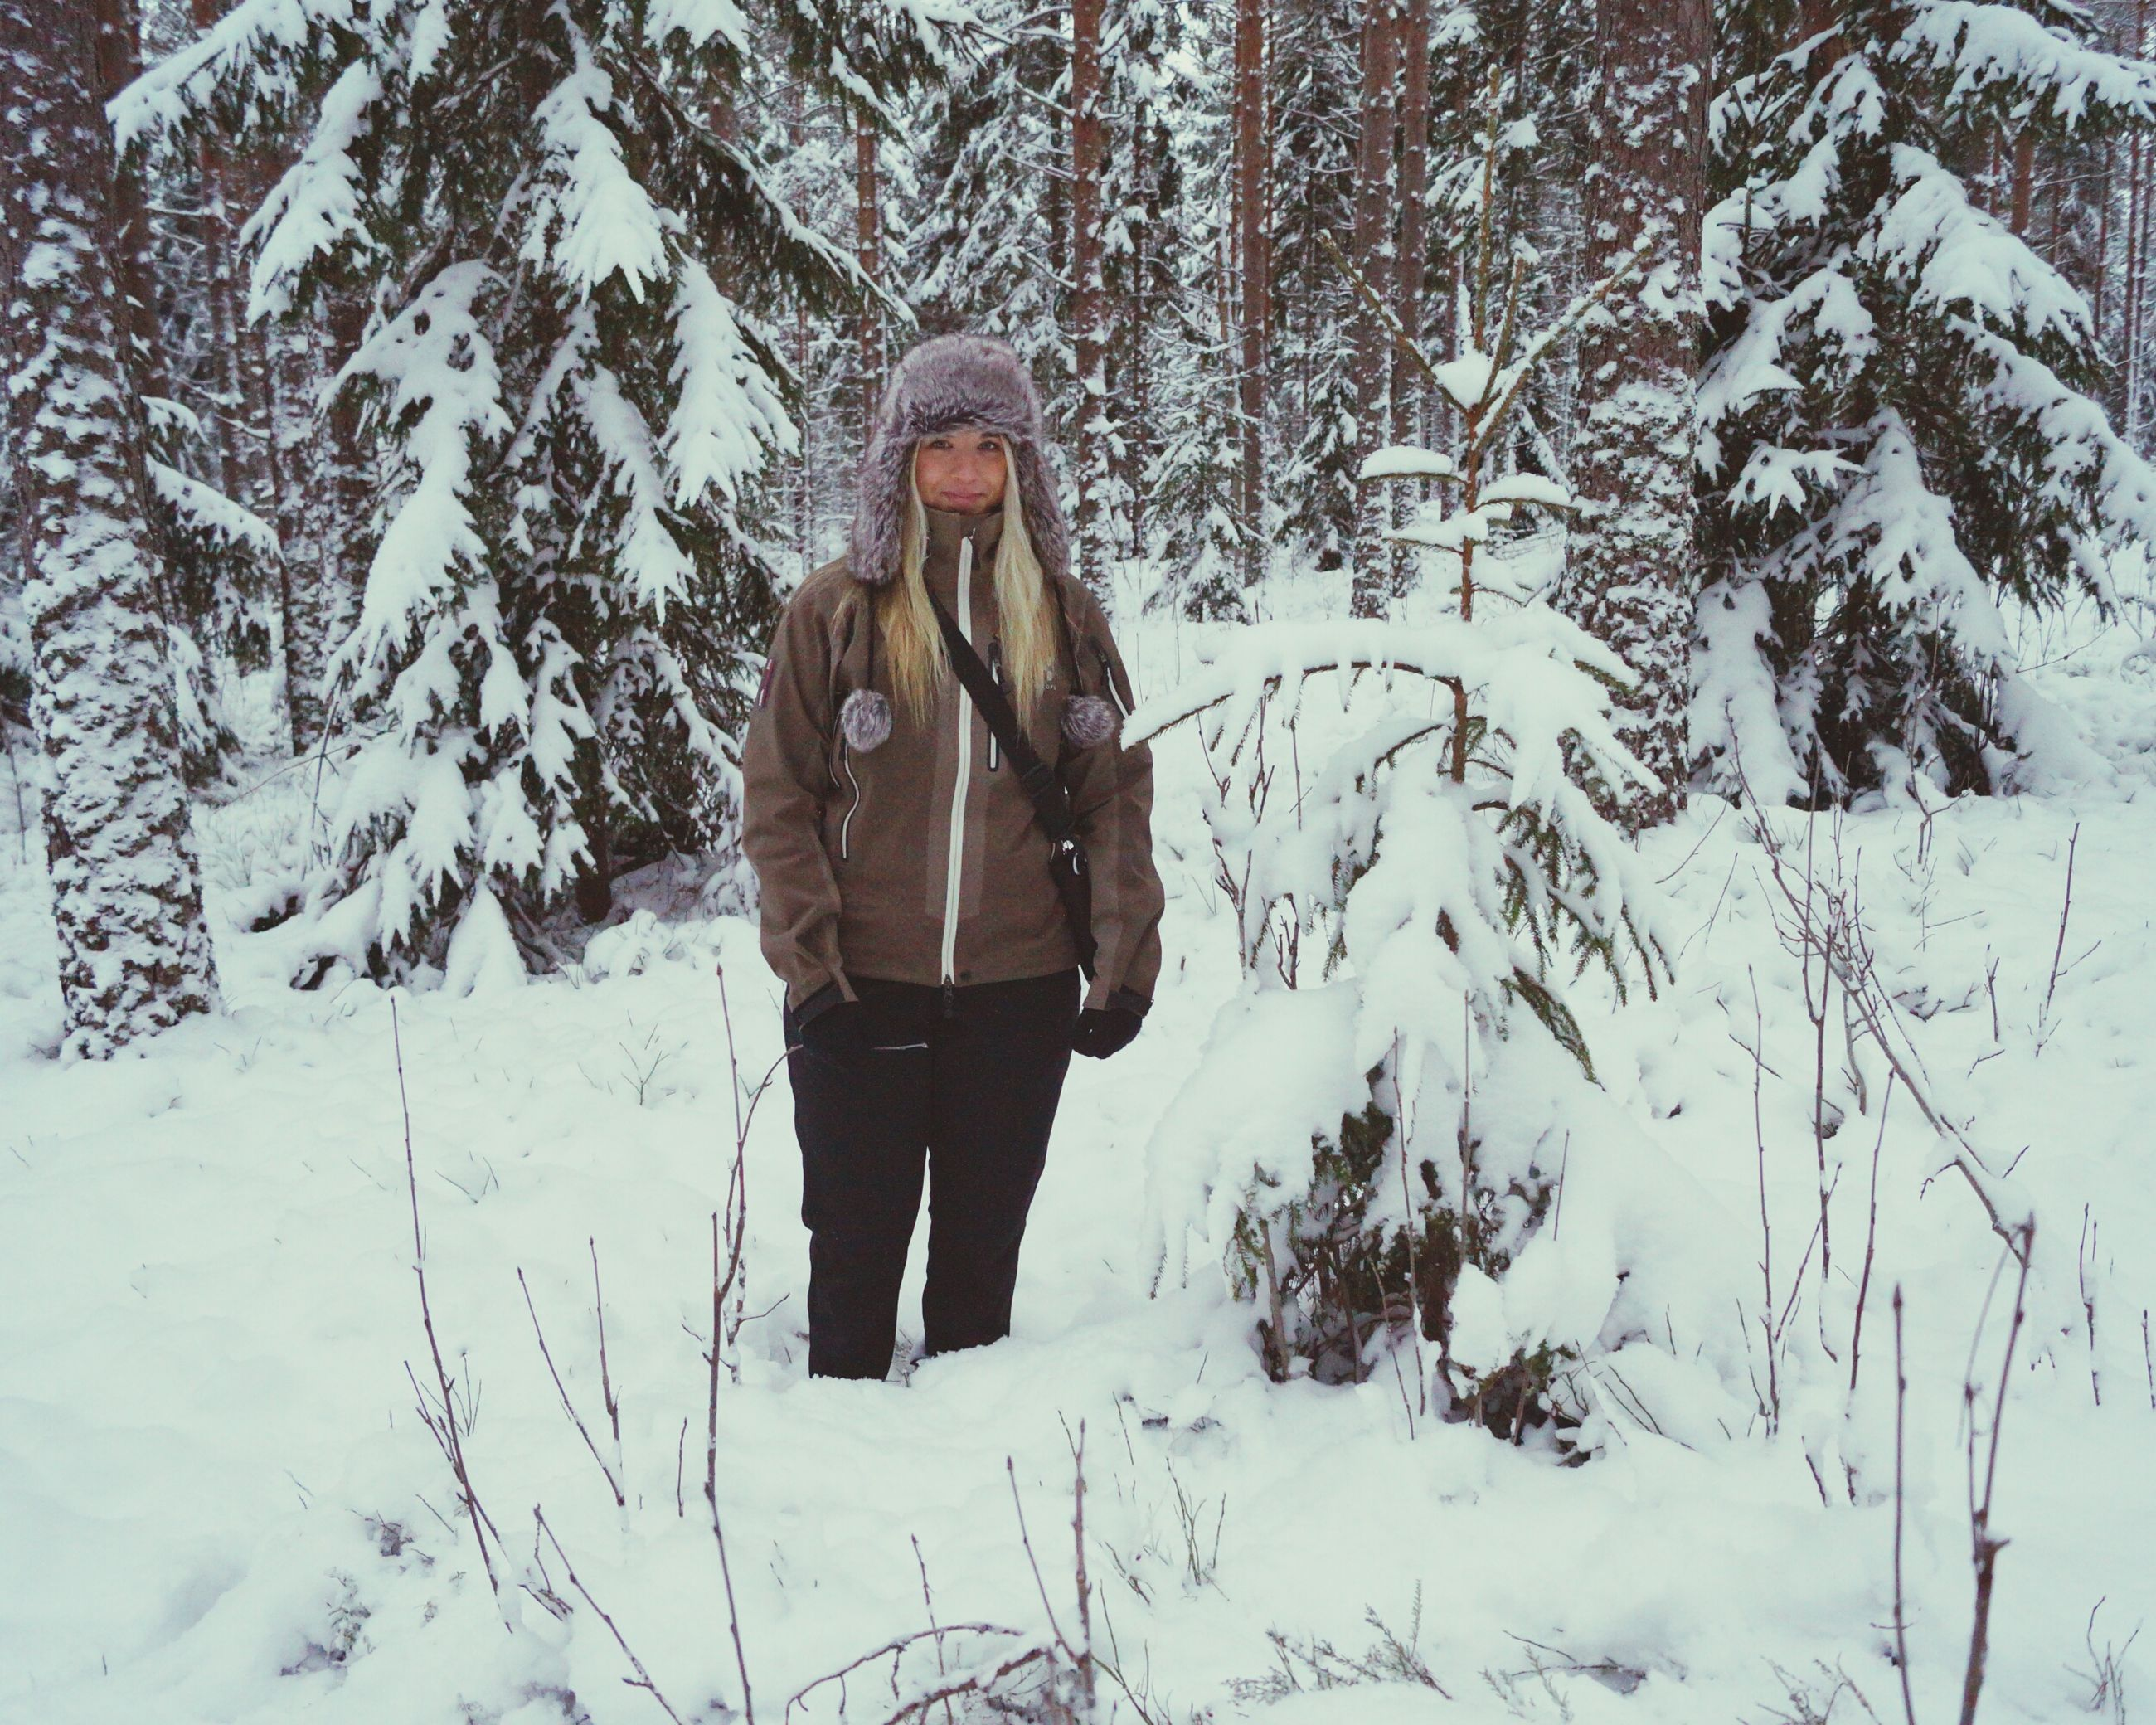 winter, snow, cold temperature, warm clothing, tree, weather, one person, one man only, outdoors, mature adult, day, nature, lifestyles, leisure activity, one mature man only, standing, people, adults only, snowing, only men, men, beauty in nature, adult